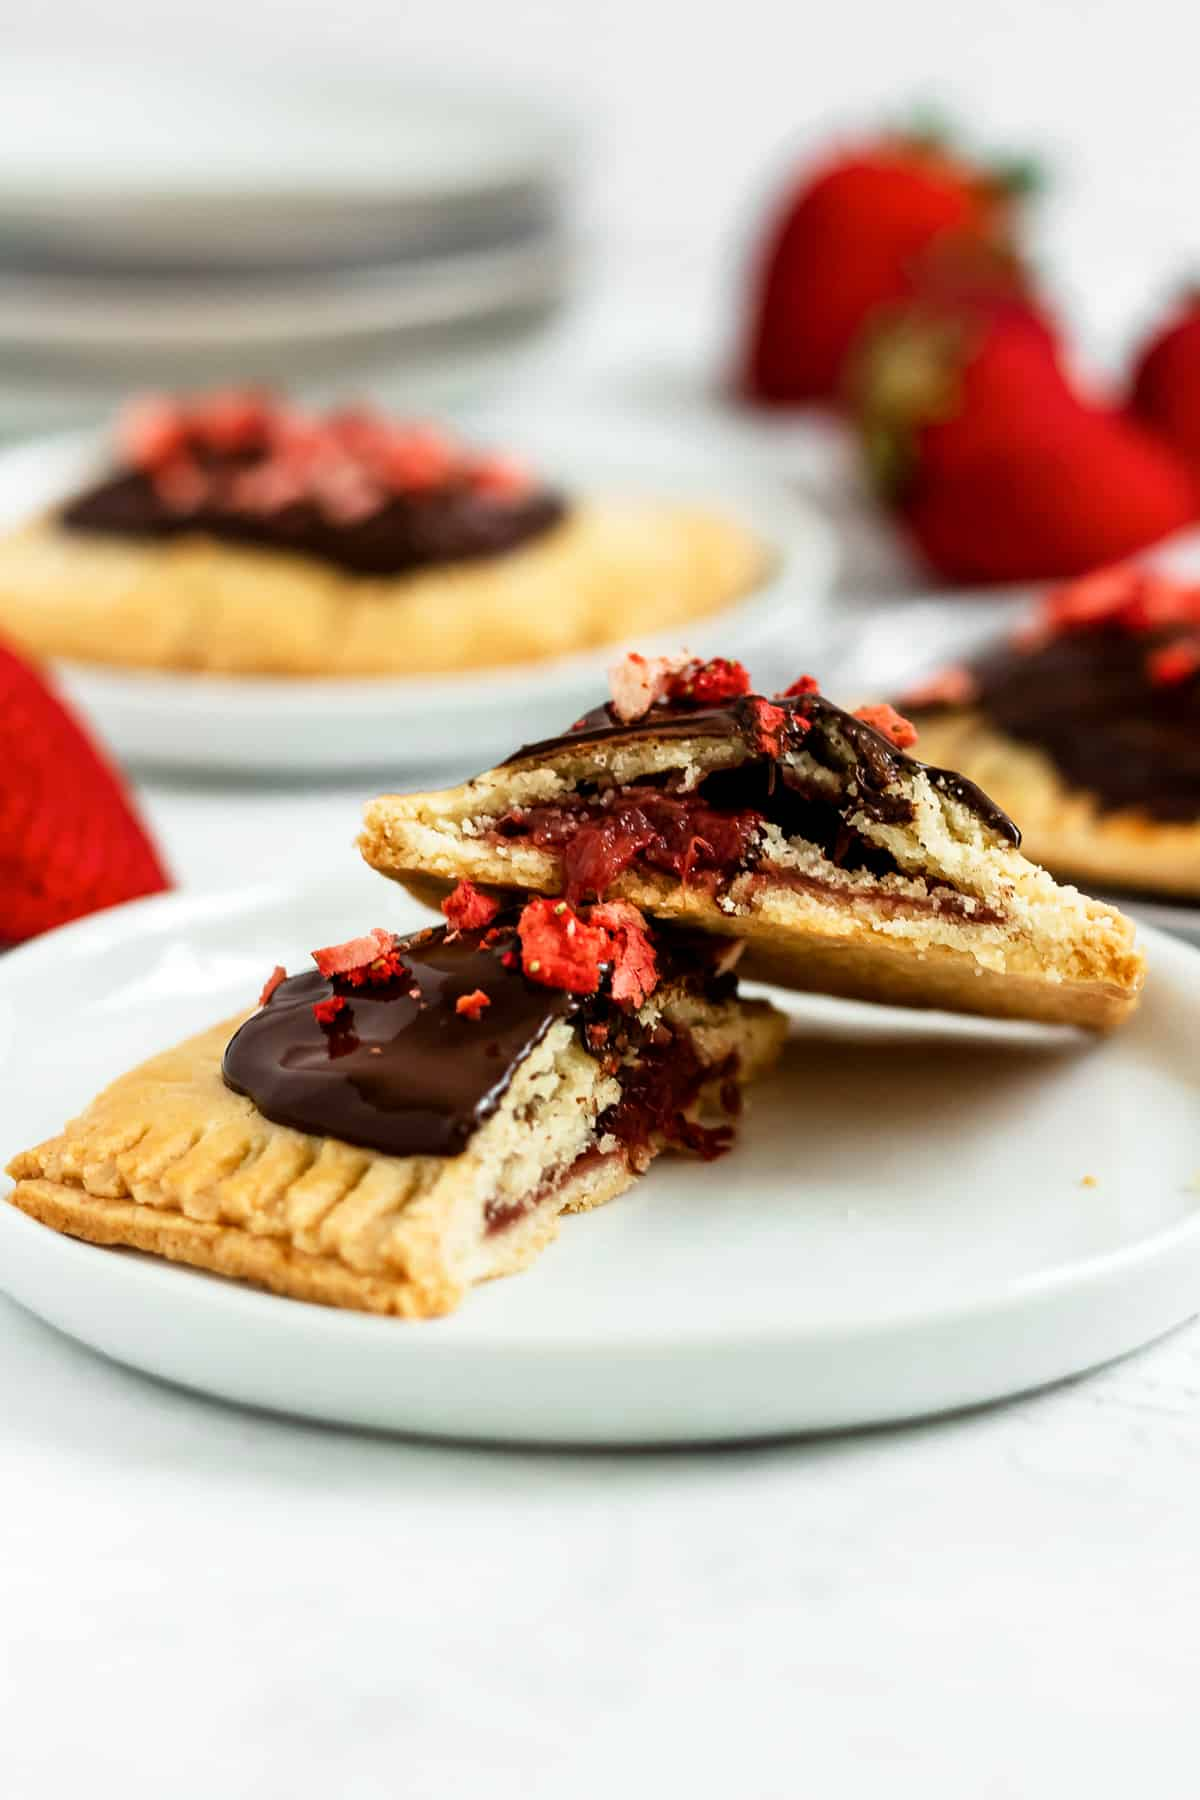 Paleo Chocolate Covered Strawberry Pop Tarts (gluten free, grain free, refined sugar free)